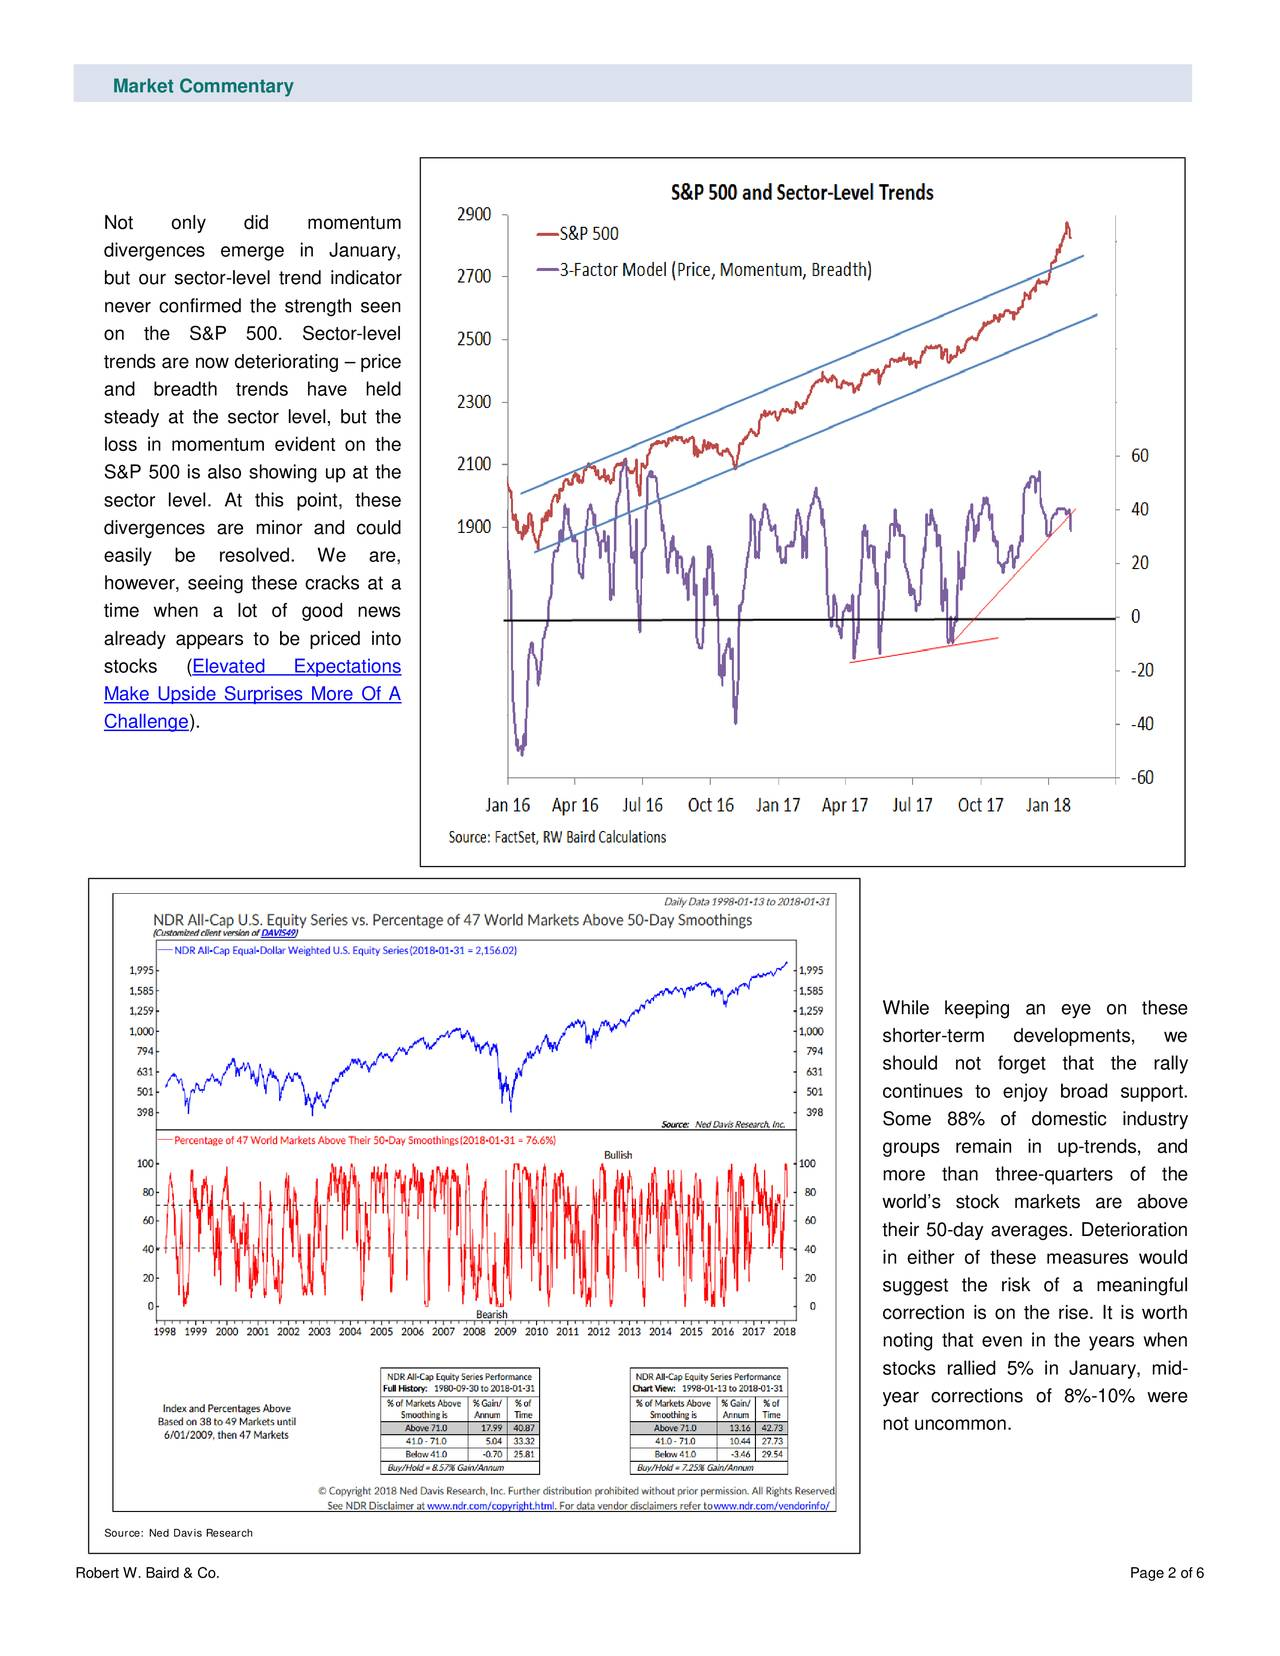 Not only did momentum divergences emerge in Janua ry, but our sector -level trend indicator never confirmed the strength seen on the S&P 500. Sector-level trends are now deteriorating – price and breadth trends have held steady at the sector level, b ut the loss in momentum evident on the S&P 500 is also showing up at the sector level. At this point, these divergences are minor and could easily be resolved. We are, however, seeing these cracks at a time when a lot of good news already appears to be pri ced into stocks ( Elevated Expectations Make Upside Surprises More Of A Challenge). While keeping an eye on these shorter-term developments, we should not forget that the rally continues to enjoy broad support. Some 88% of domestic industry groups remain in up-trends, and more than three- quarters of the world's stock markets are above their 50-day averages. Deterioration in either of these measures would suggest the risk of a meaningful correction is on the rise. It is worth noting that even in the years when stocks rallied 5% in January, mid- year corrections of 8%-10% were not uncommon. Source: Ned Davis Research Robert W. Baird & Co. Page 2 of 6